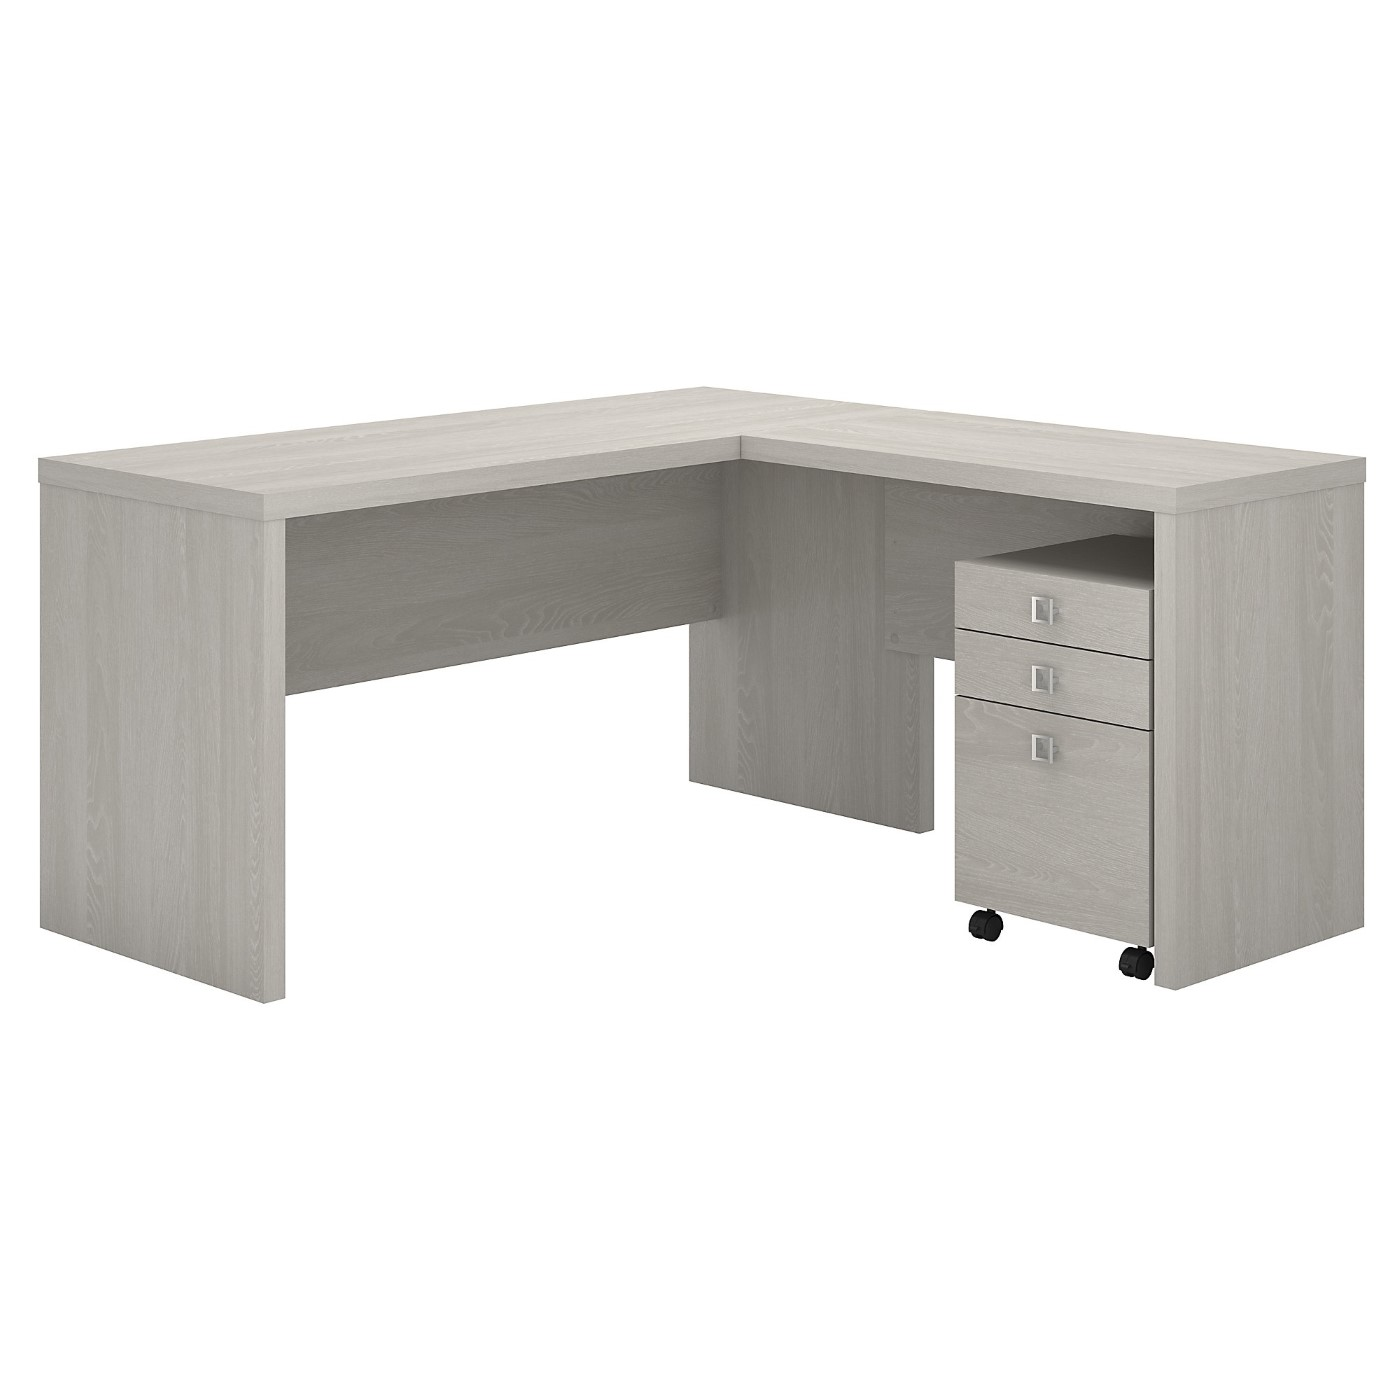 </b></font><b>The kathy ireland� Echo L Shaped Desk with Mobile File Cabinet is Sustainable Eco Friendly Furniture. Includes Free Shipping! 30H x 72L x 72W</font>. <p>RATING:&#11088;&#11088;&#11088;&#11088;&#11088;</b></font></b>